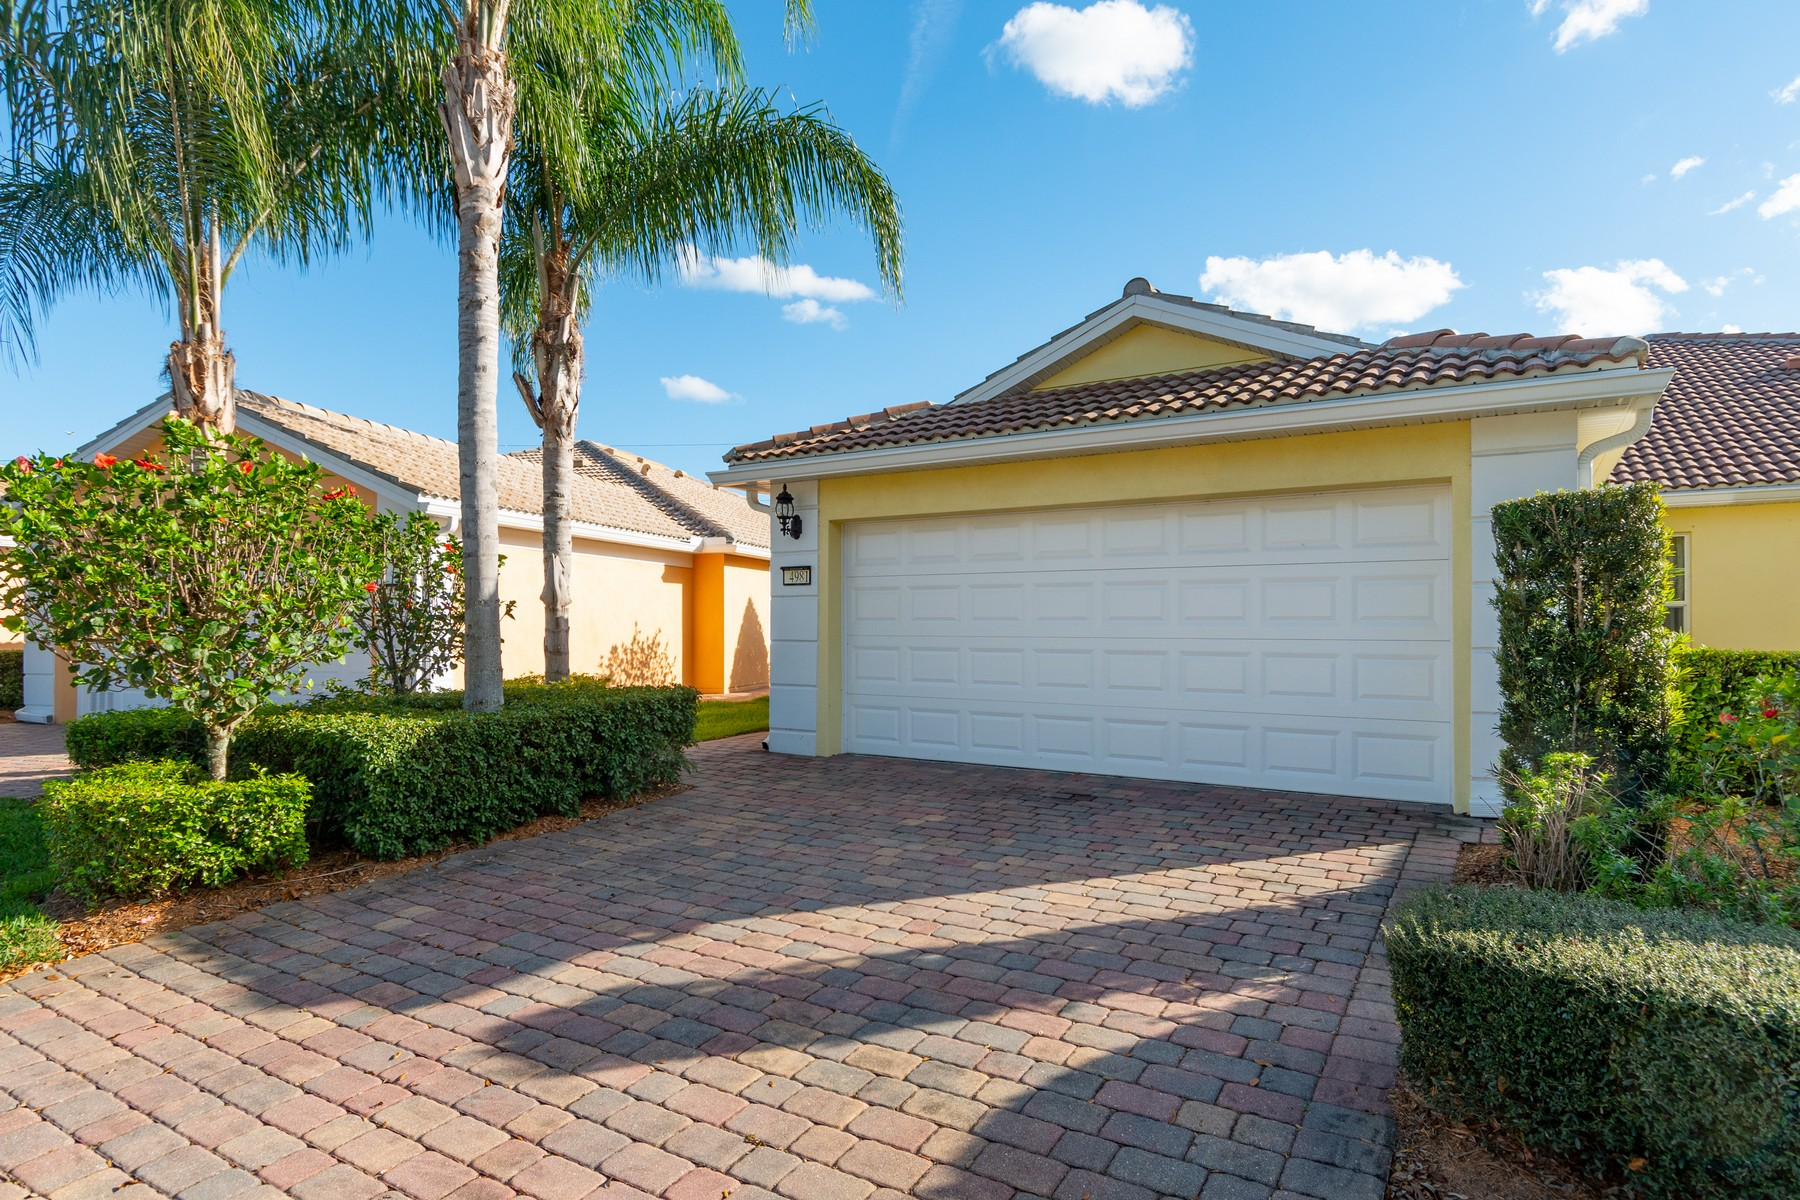 Single Family Home for Sale at Carrington Model on a Beautifully Landscaped Lot 4981 Corsica Square Vero Beach, Florida 32967 United States